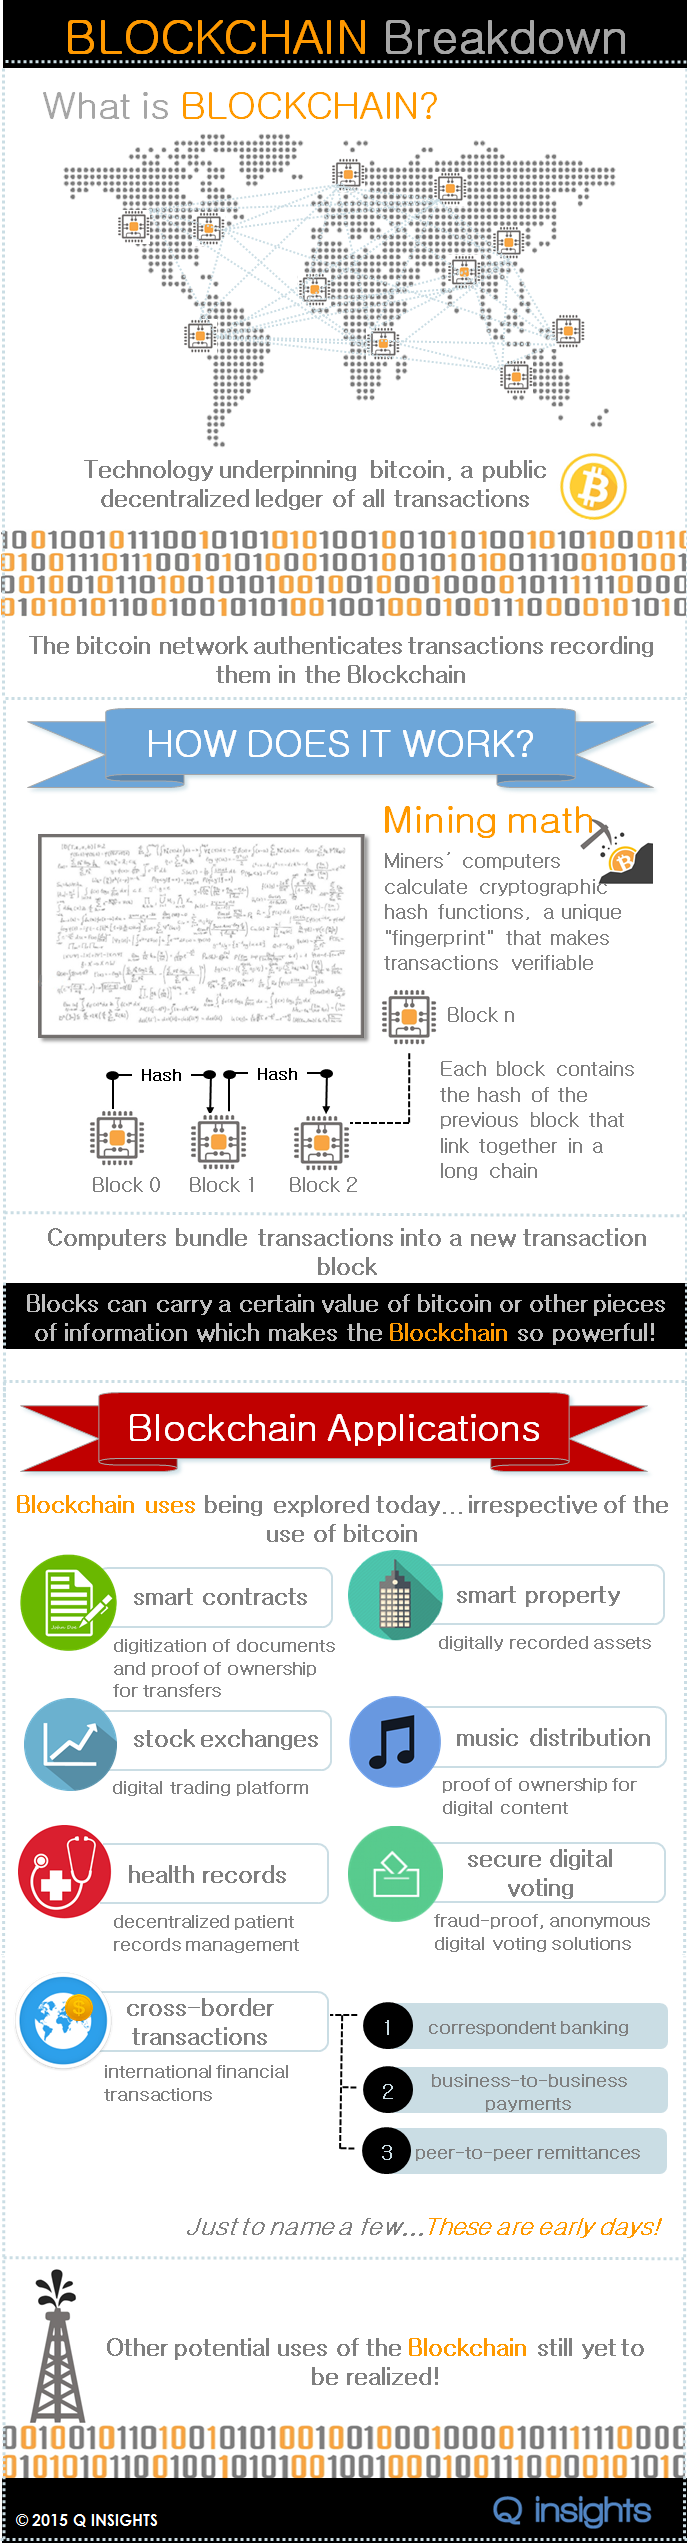 Blockchain-Infographic-2015-Q-INSIGHTS